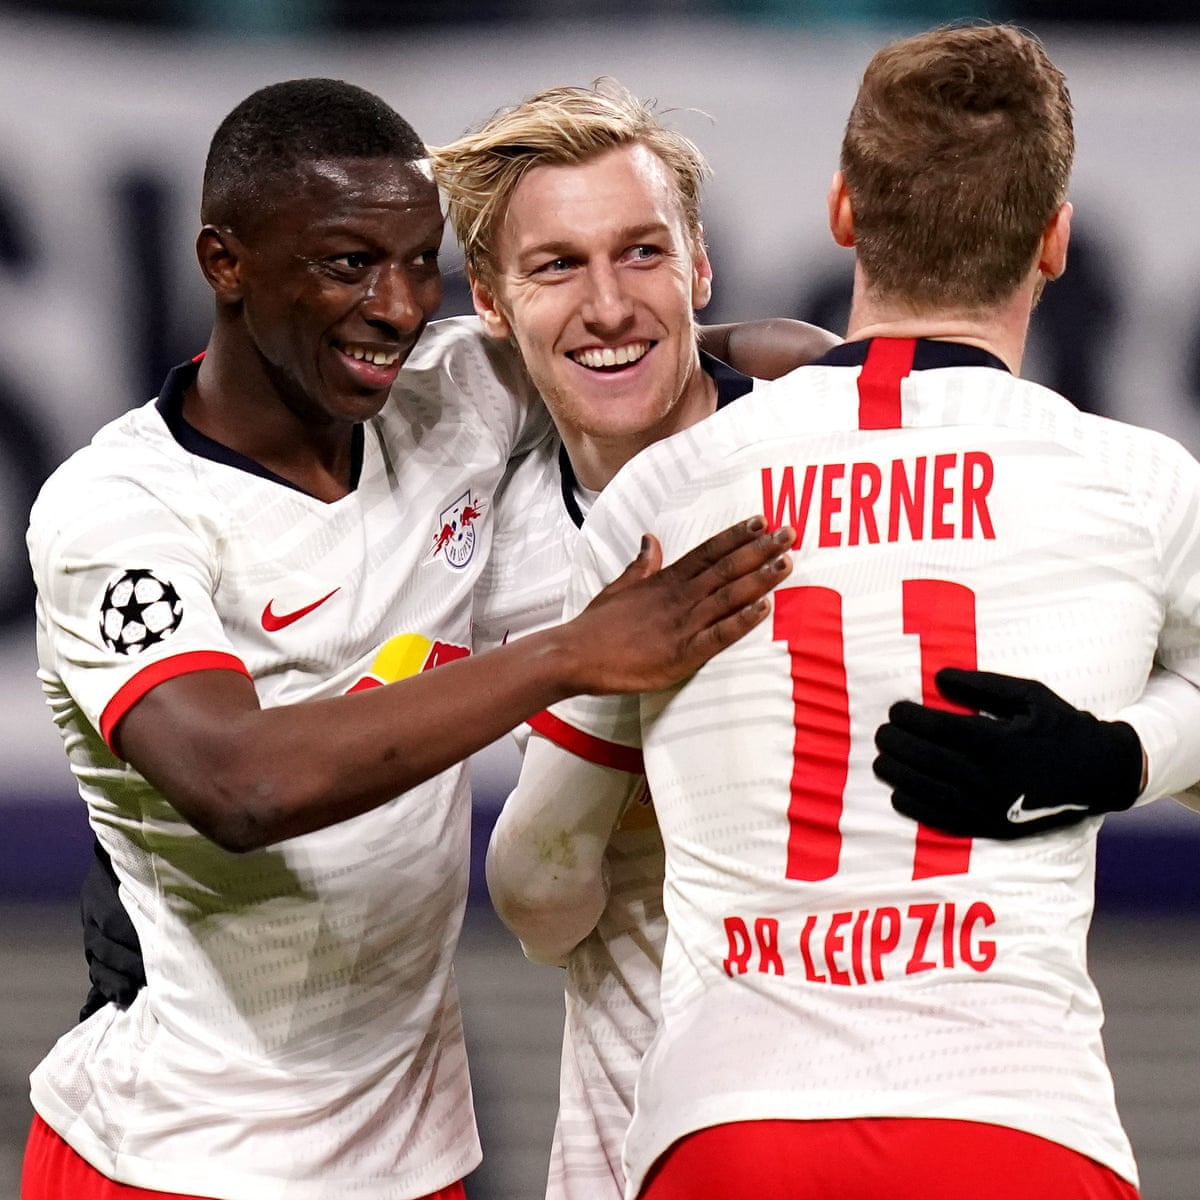 Rb Leipzig 3 0 Tottenham 4 0 Agg Champions League Last 16 As It Happened Football The Guardian